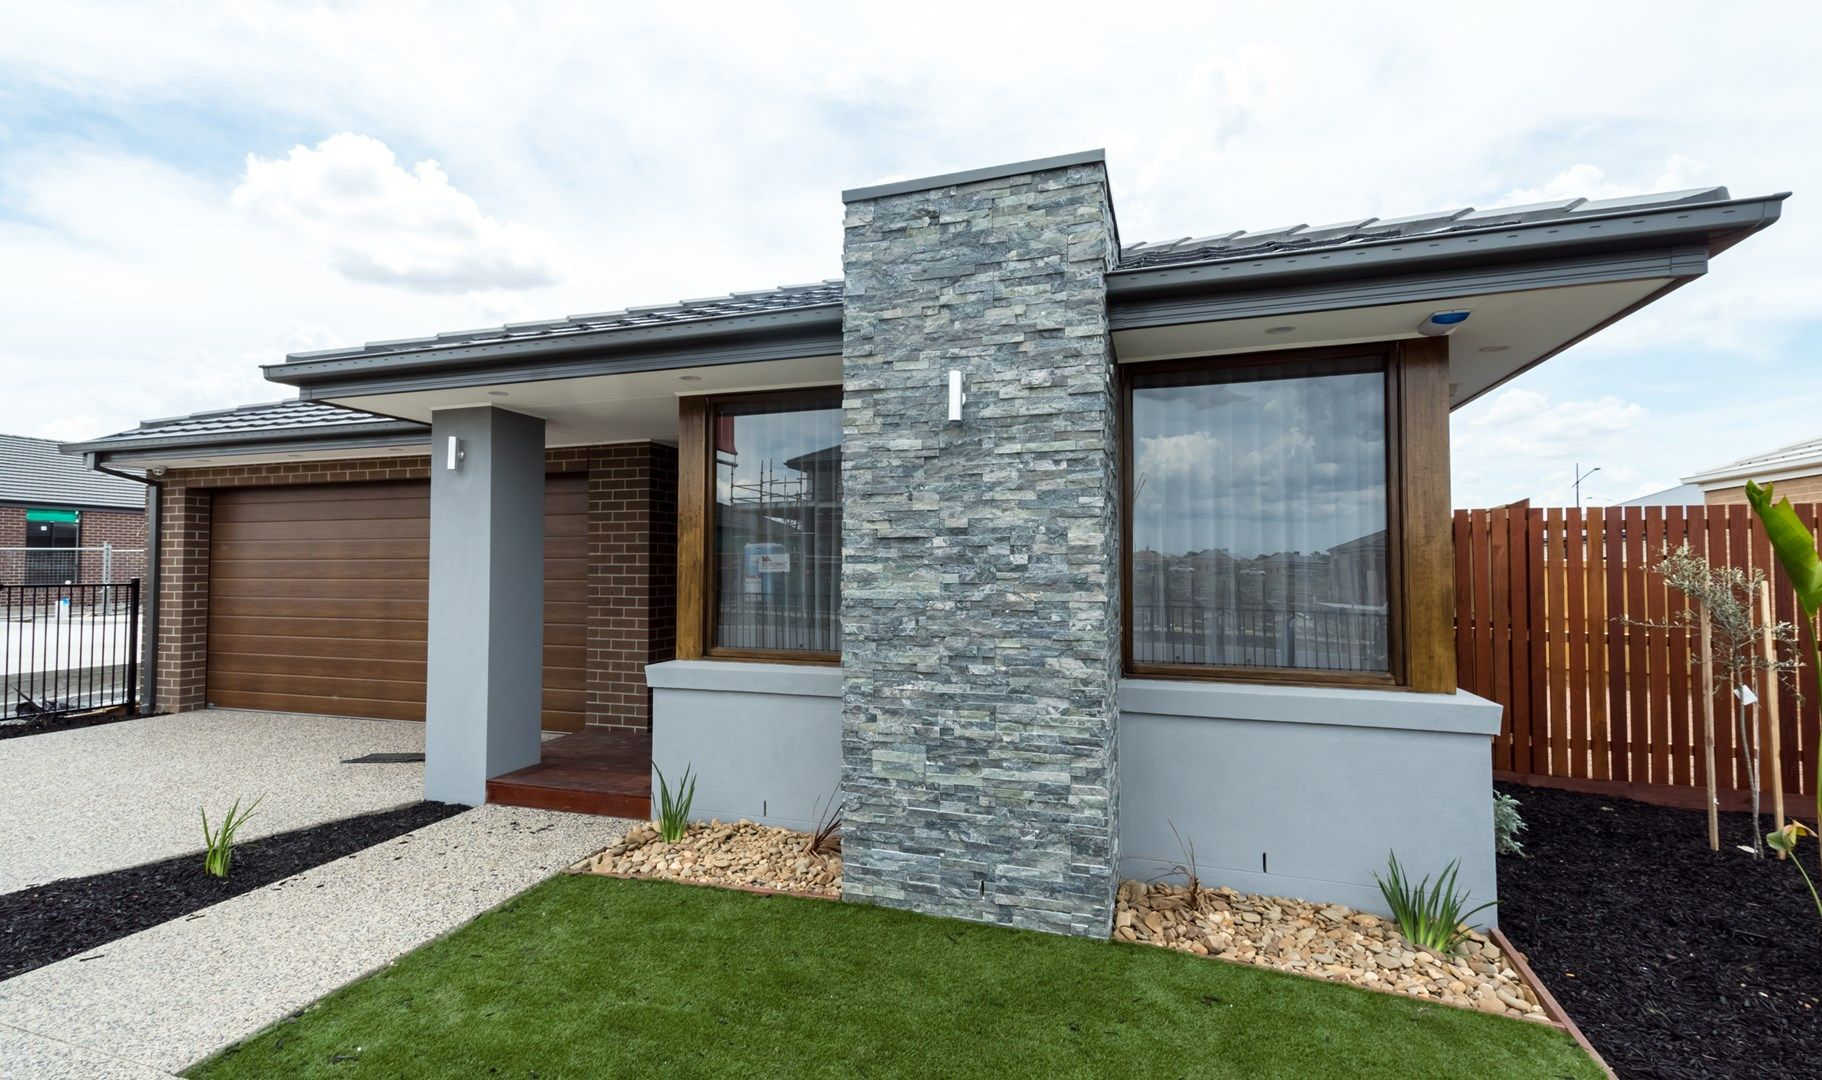 Lot 1156 Edith Street Tarneit 'Newgate Estate', Tarneit VIC 3029, Image 0